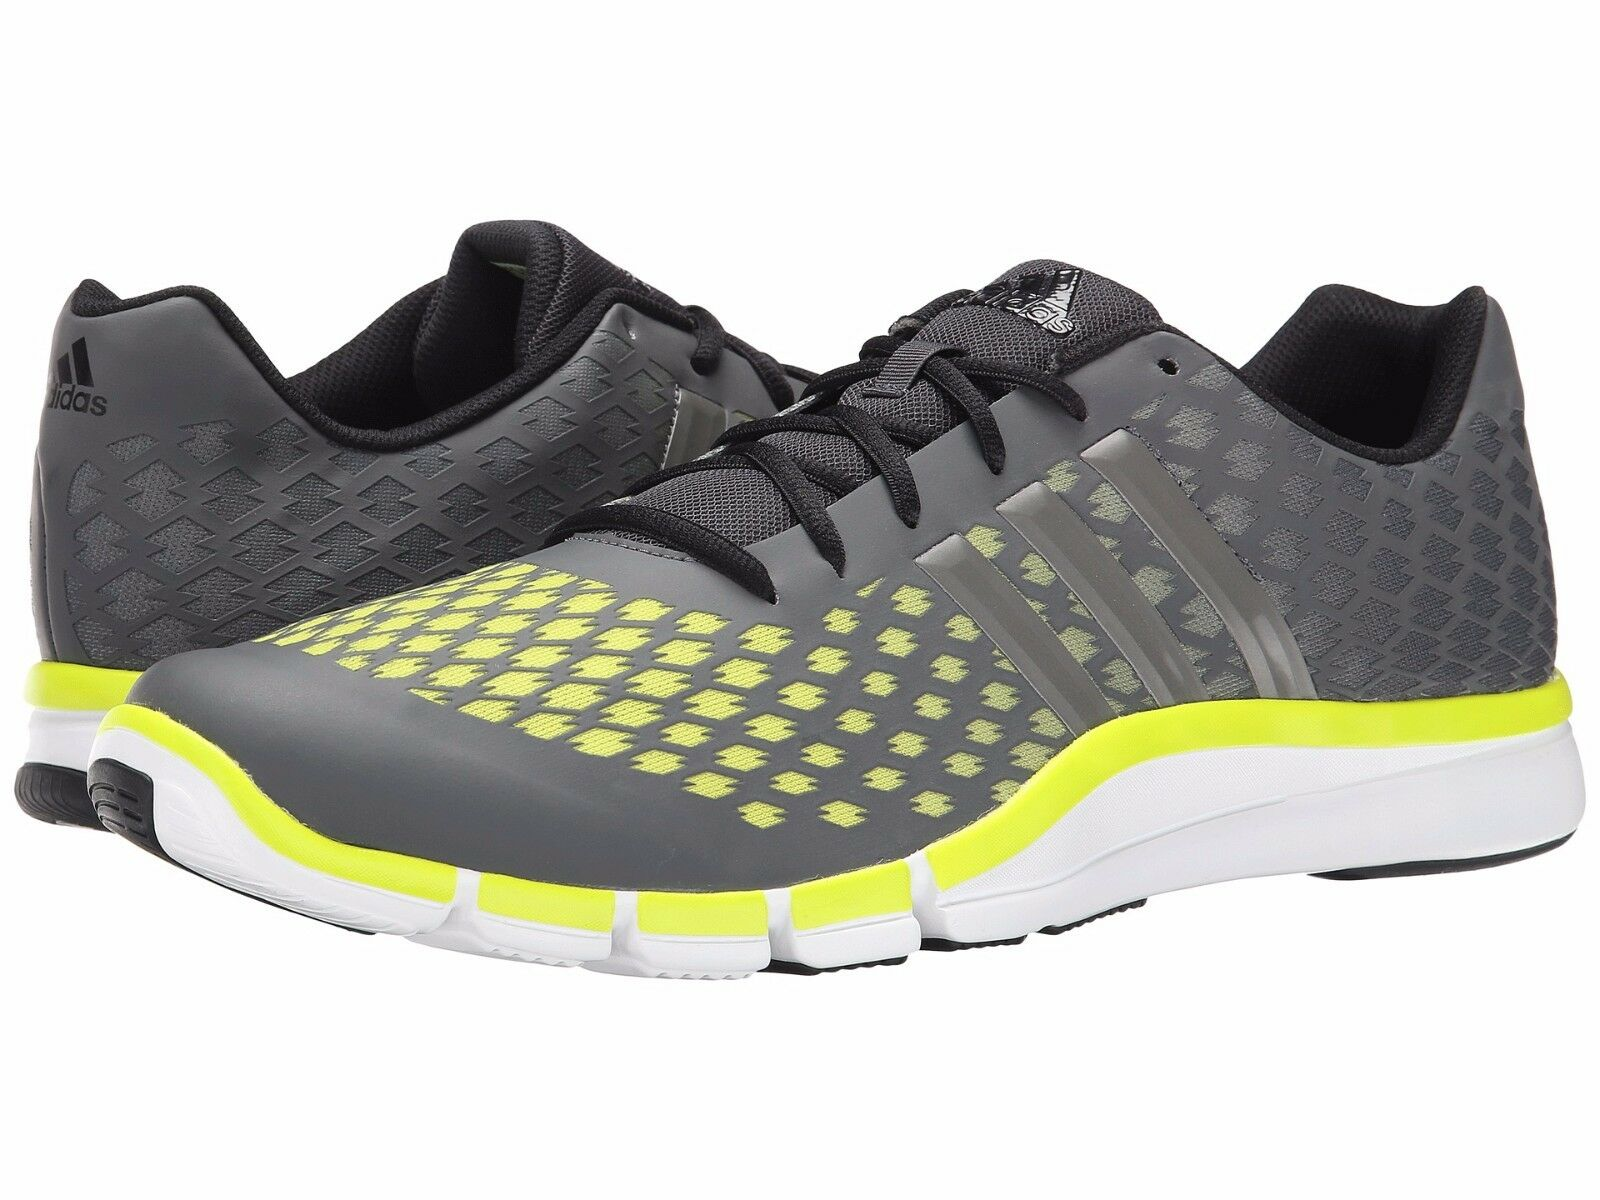 New Men's adidas Adipure 360.2 Primo Athletic Sneakers Shoes SZ 13